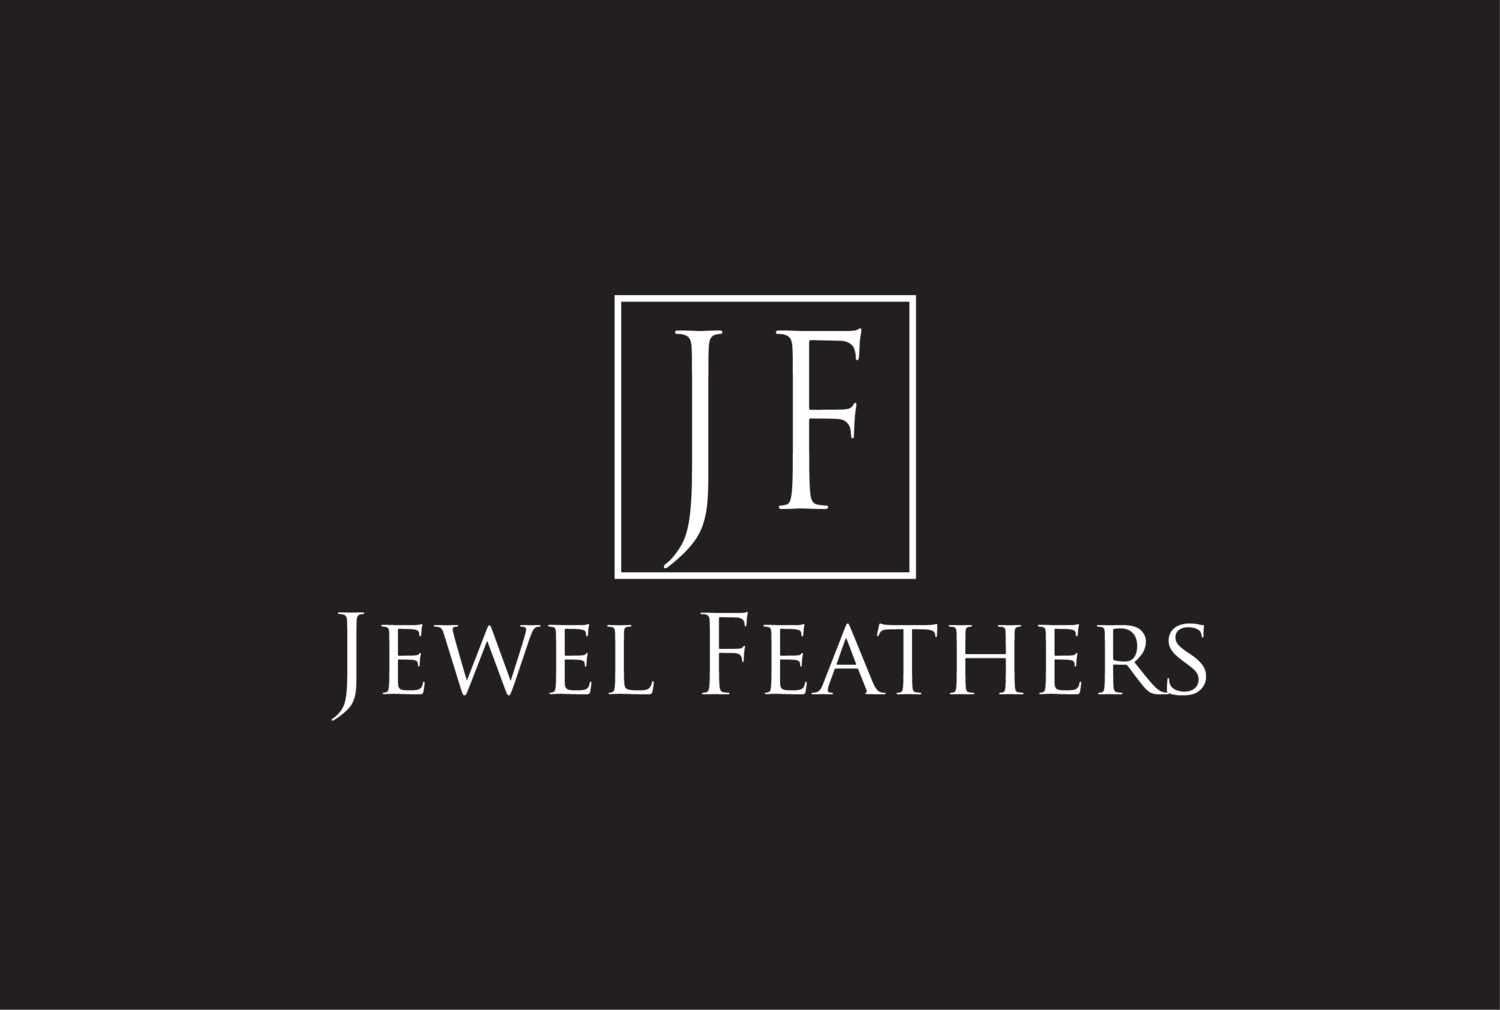 jewel feathers